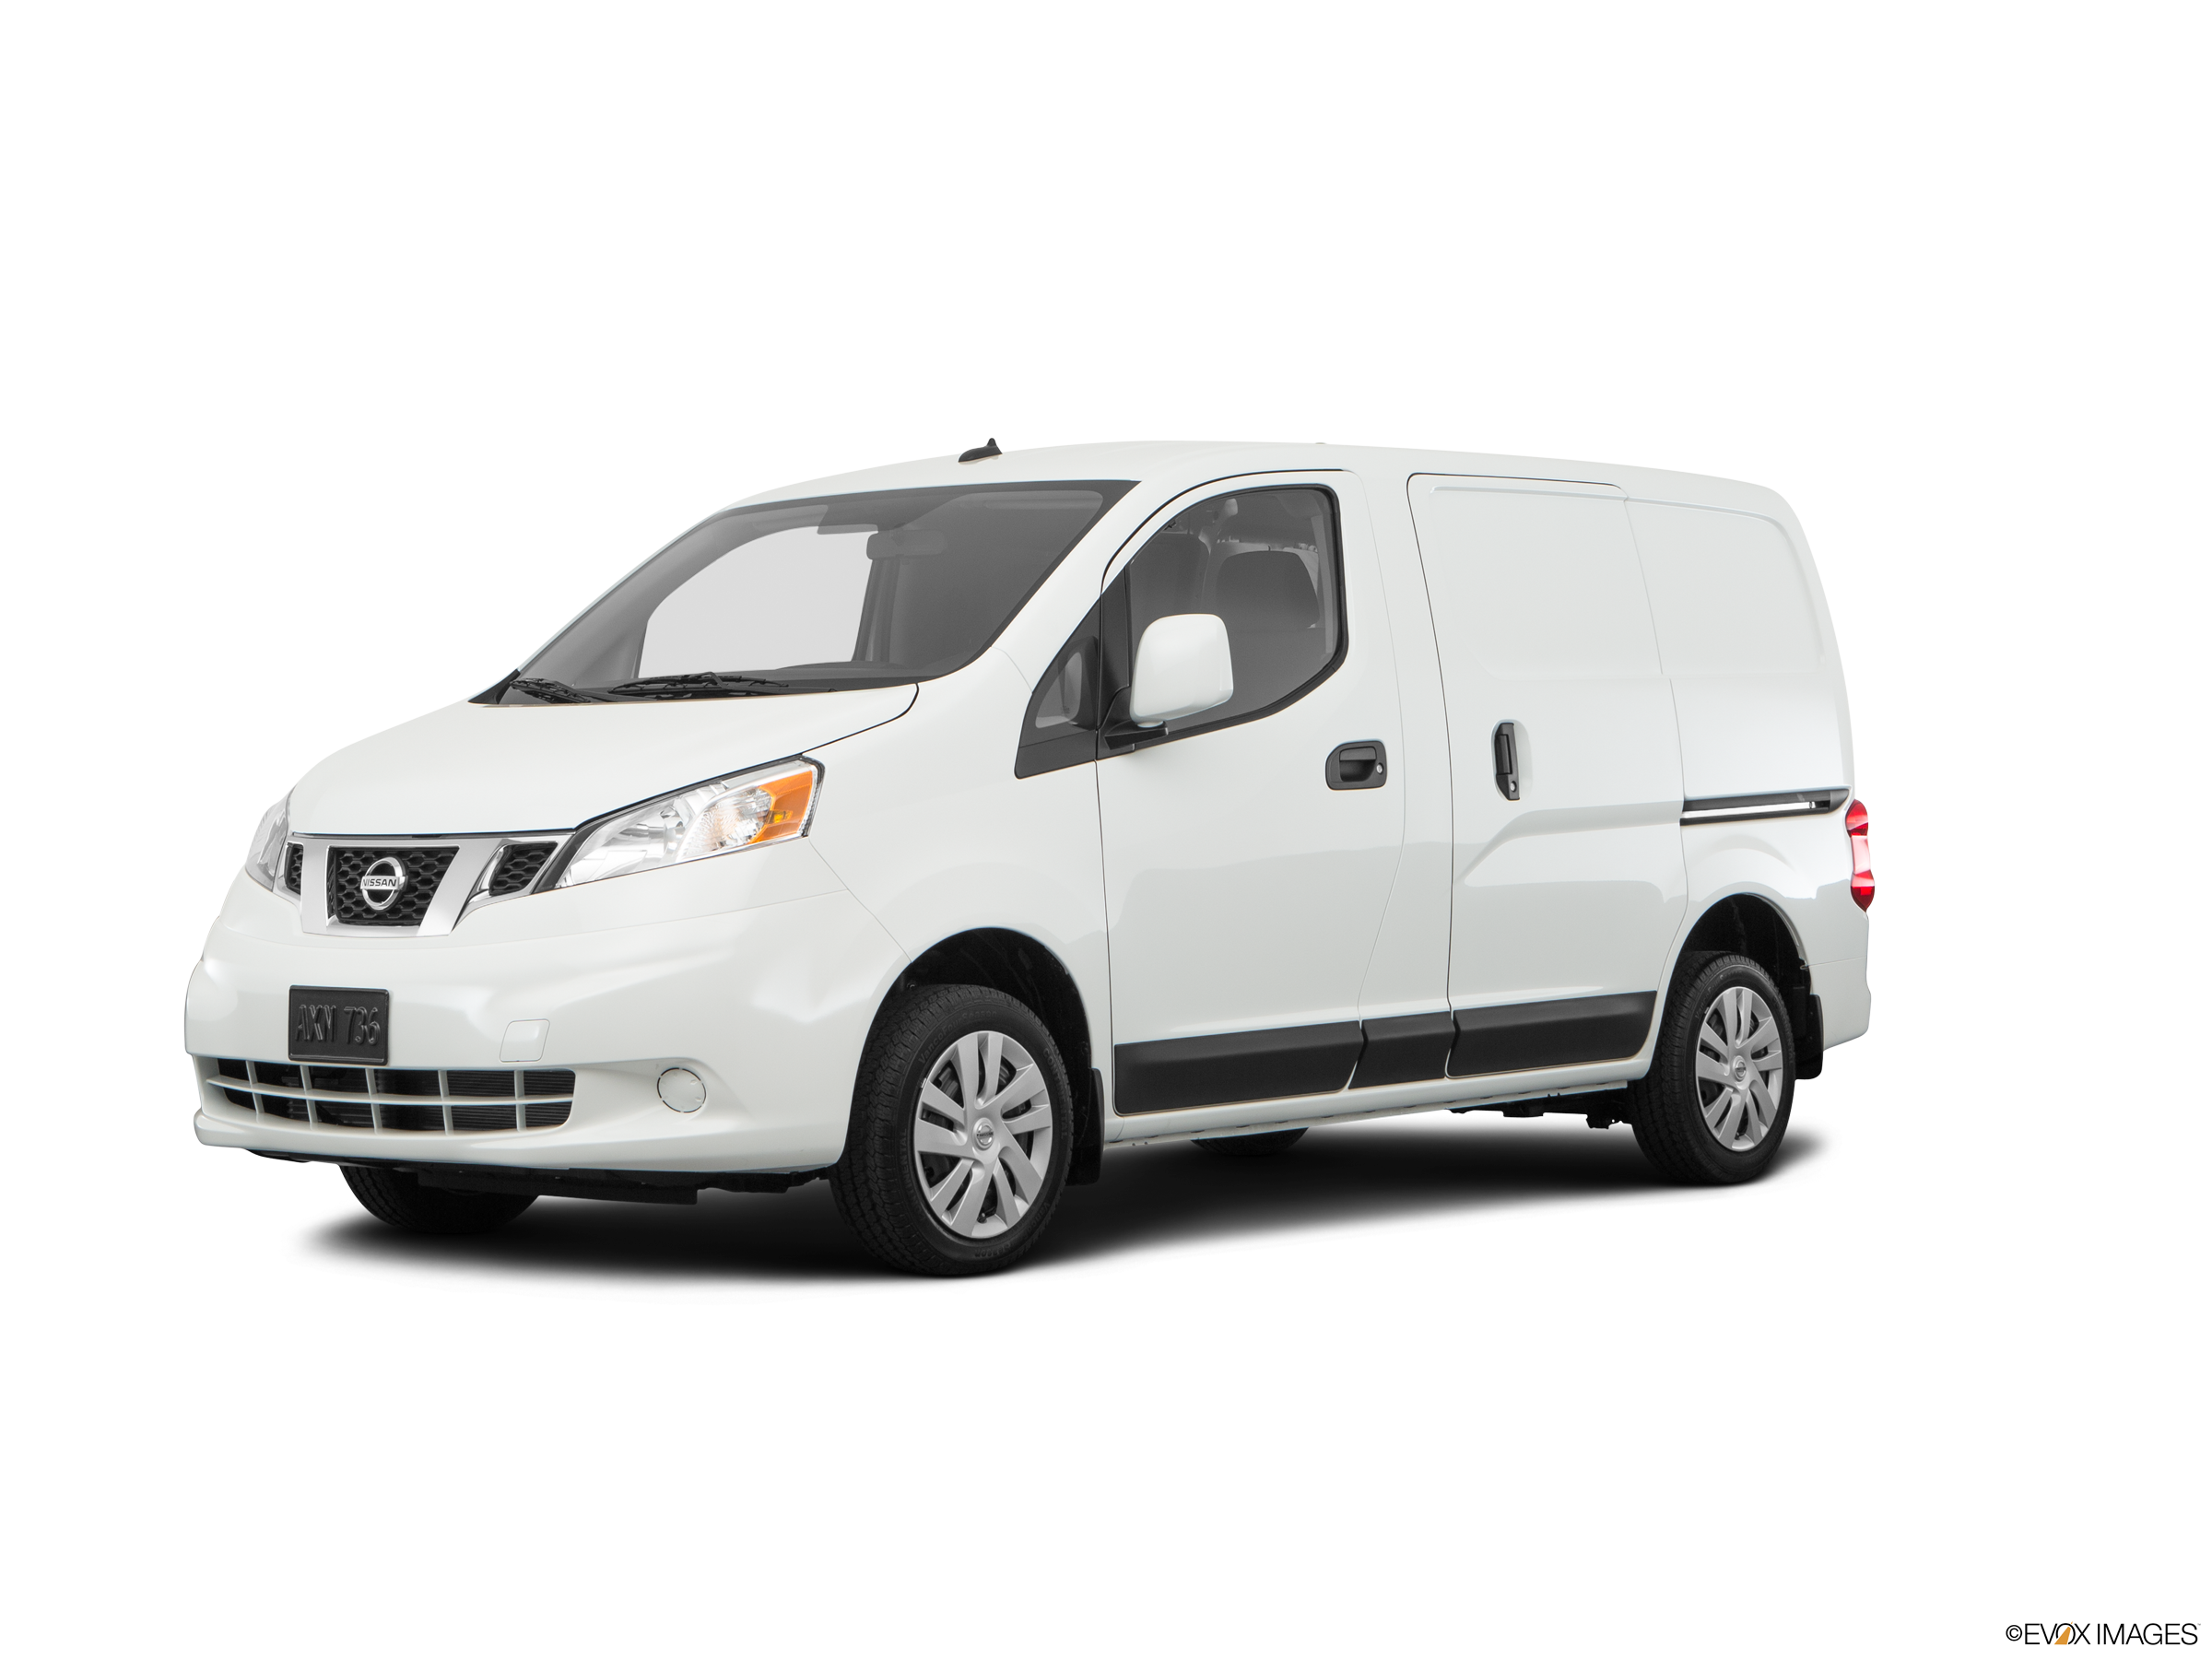 Top Expert Rated Van/Minivans of 2017 - 2017 Nissan NV200